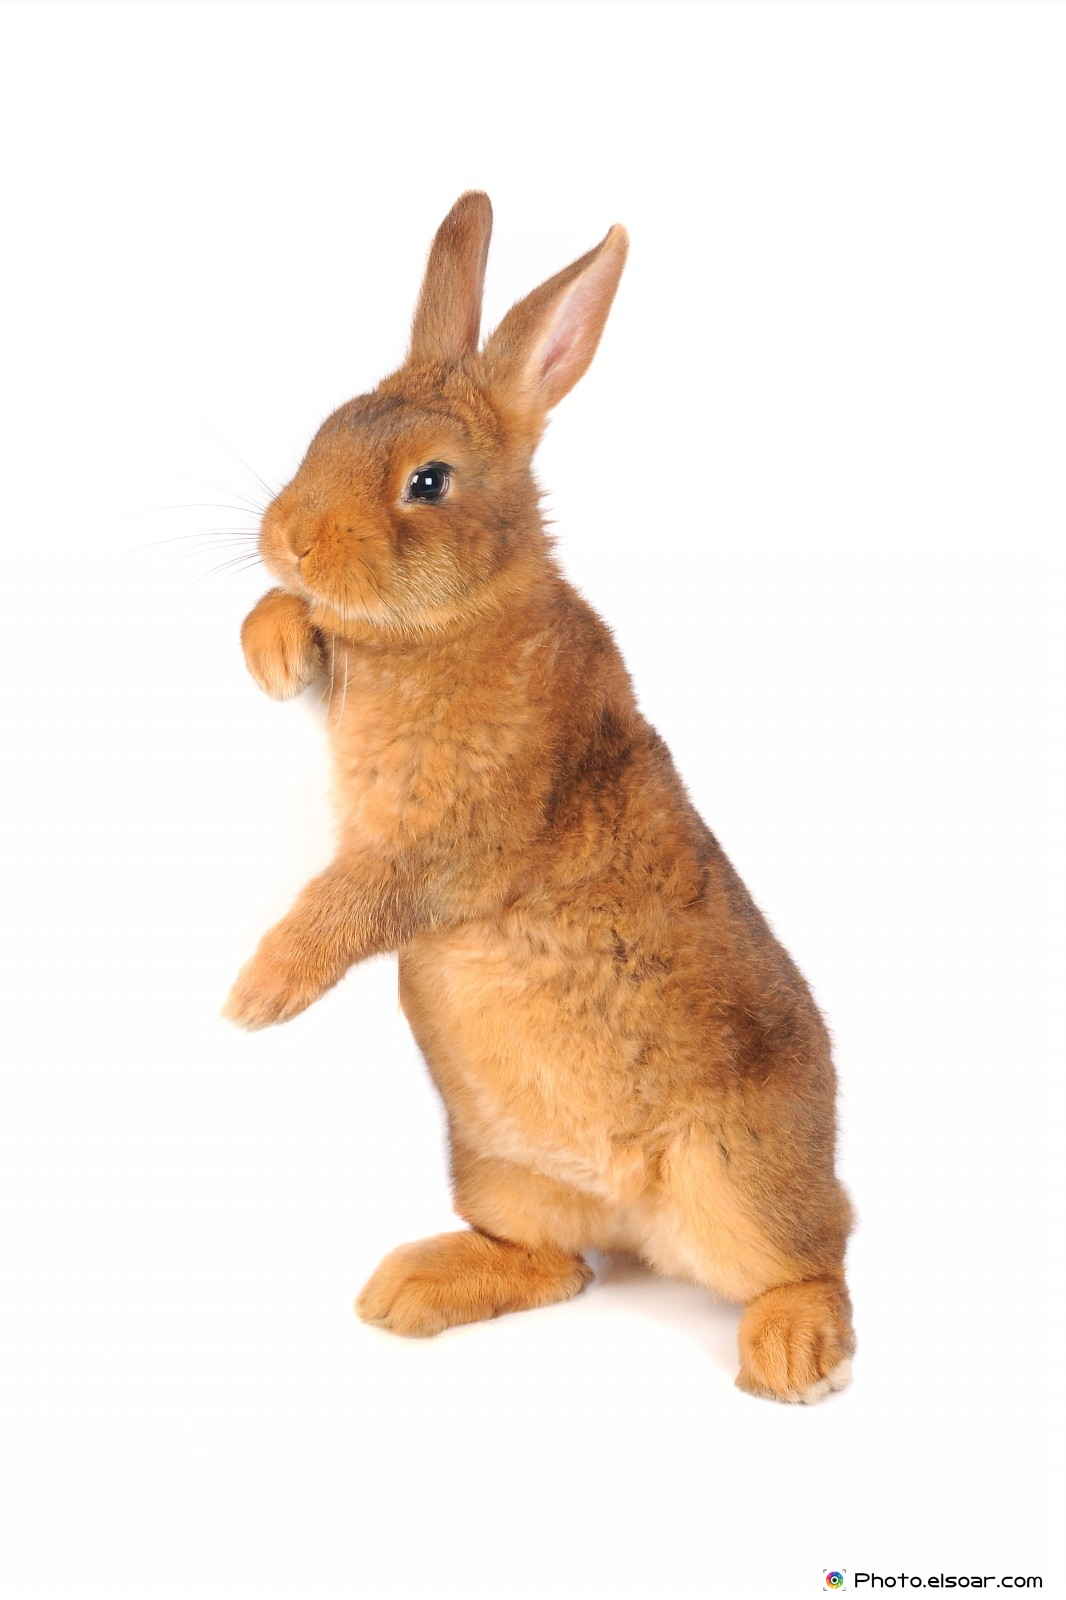 The Rabbits In Cute Pictures Elsoar